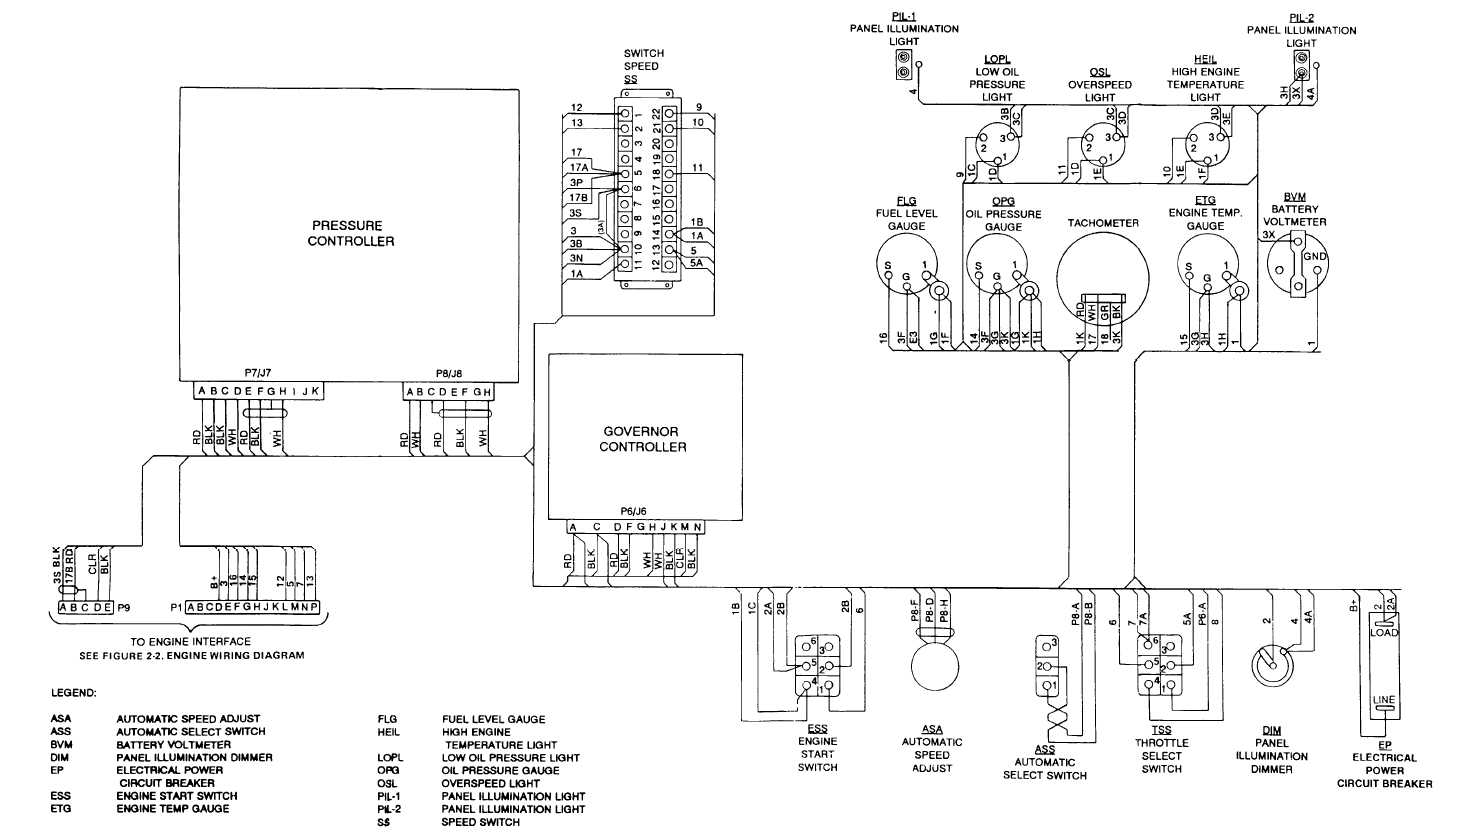 6 Volt Positive Ground Wiring Diagram from waterpumps.tpub.com